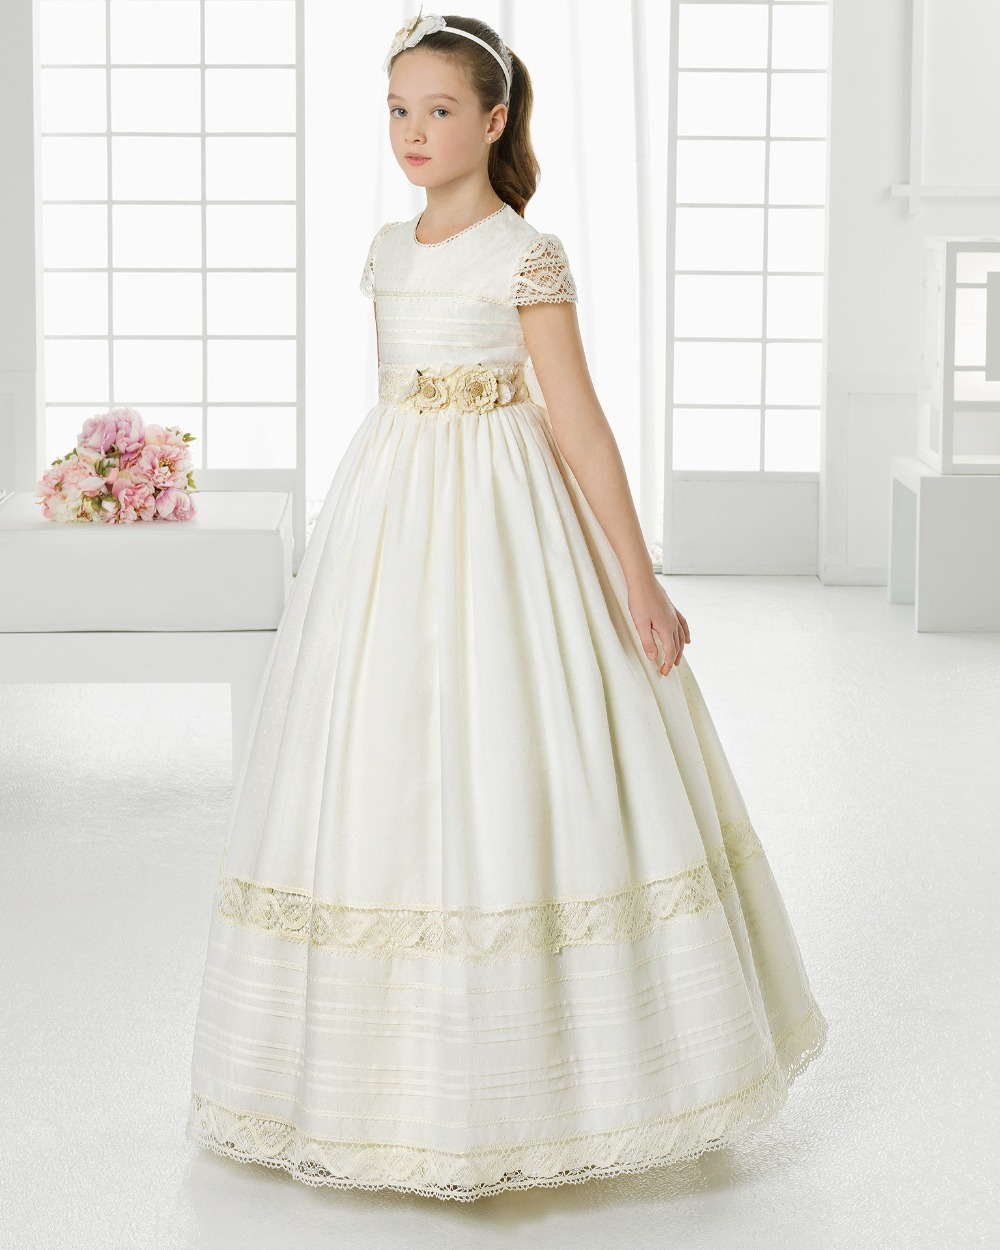 2017 first communion   dresses   for   girls   Satin Ball Gown Lace Short Sleeve   Flower     Girl     Dresses   for weddings   girls   pageant   dresses